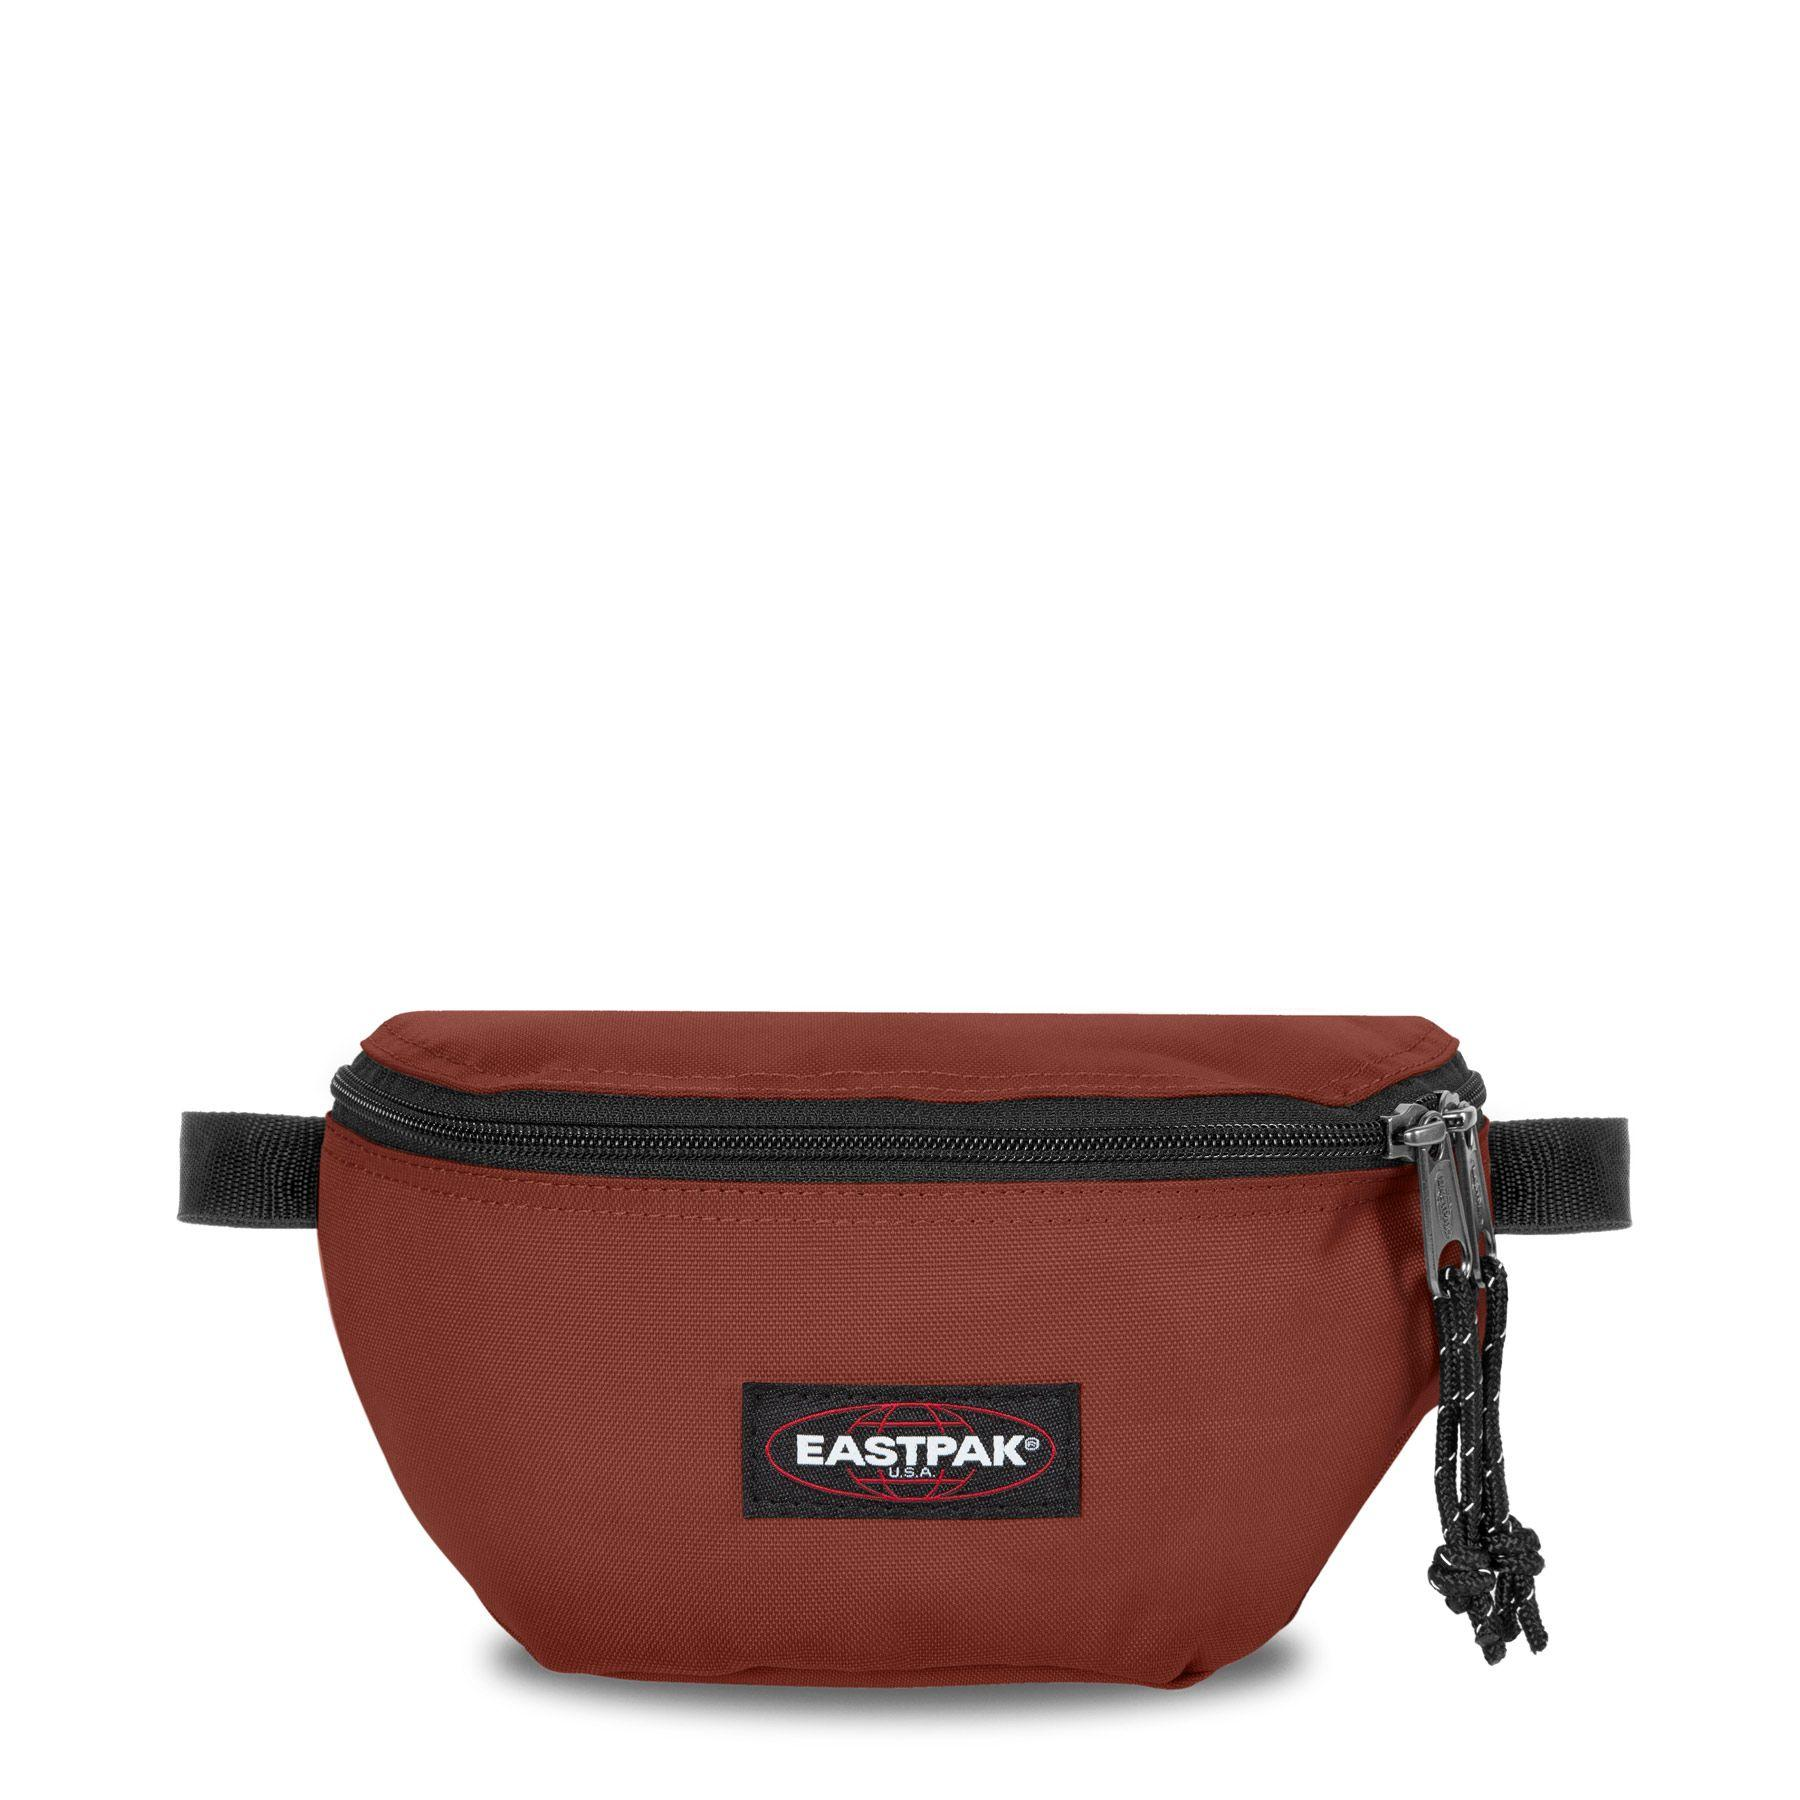 Eastpak Springer Gravel brown